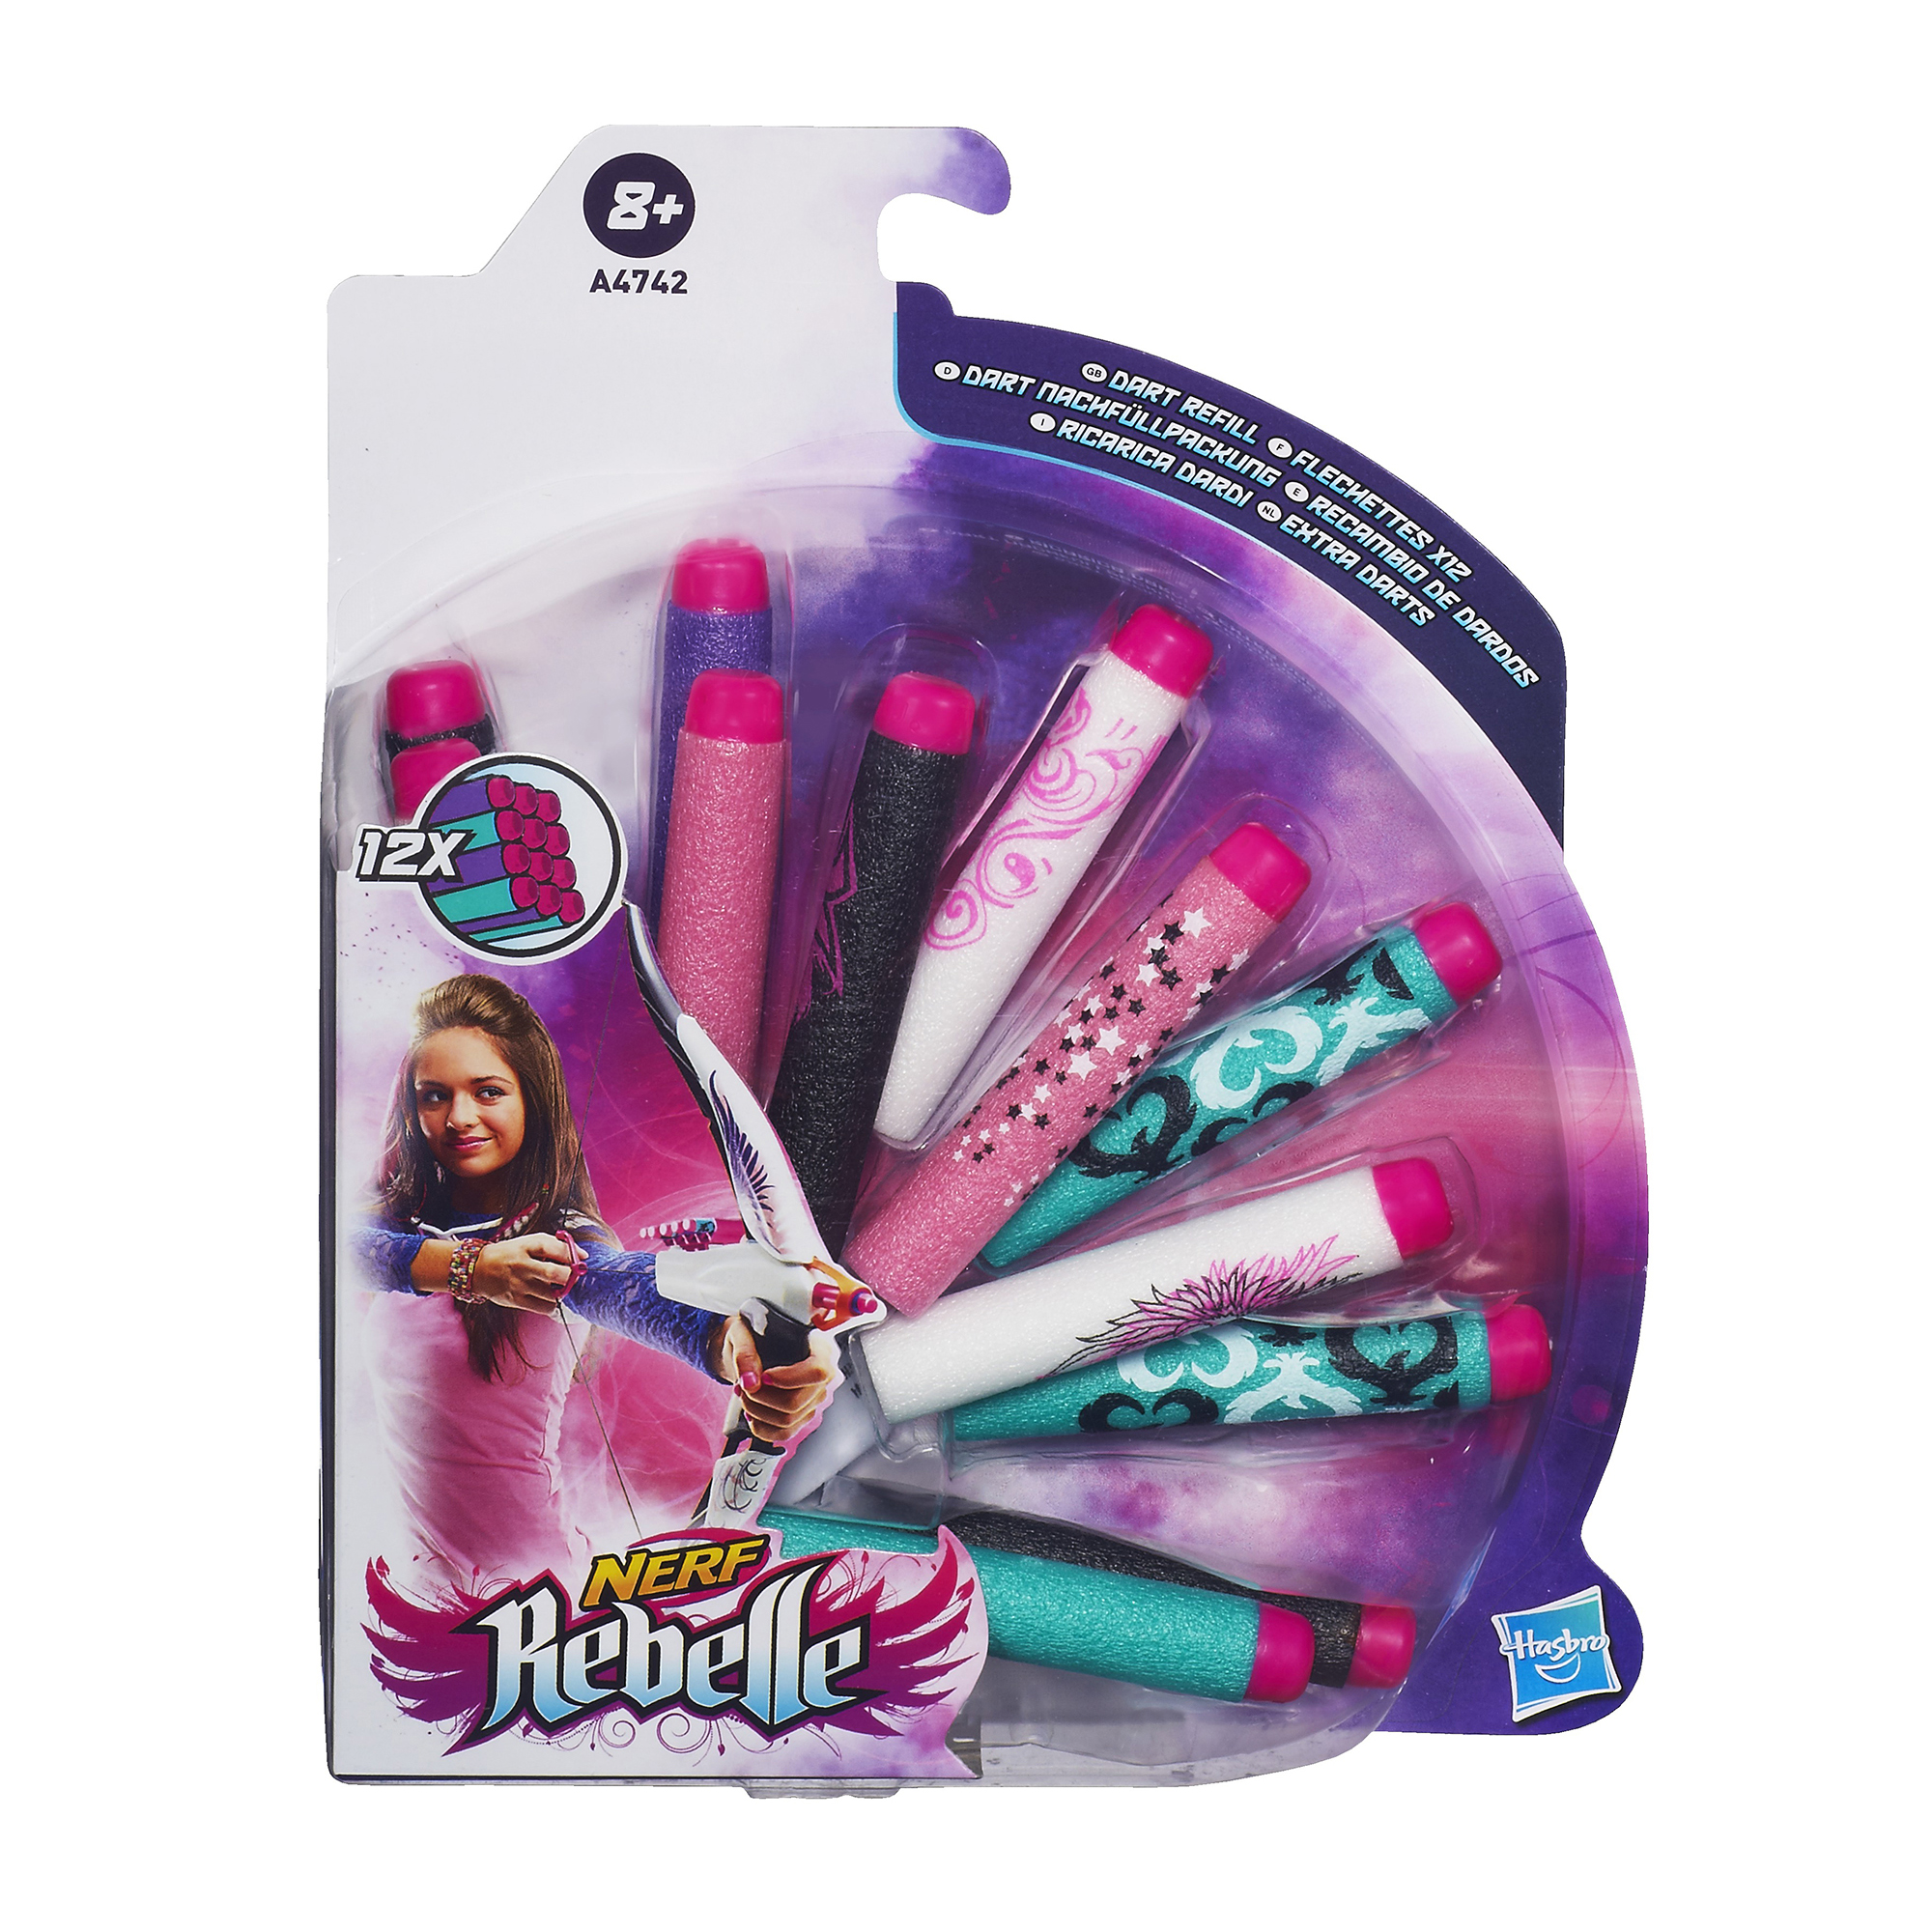 Nerf Rebelle Dart Refill Pack - Children's Birthday Your Kids Bday - 5th Birthday